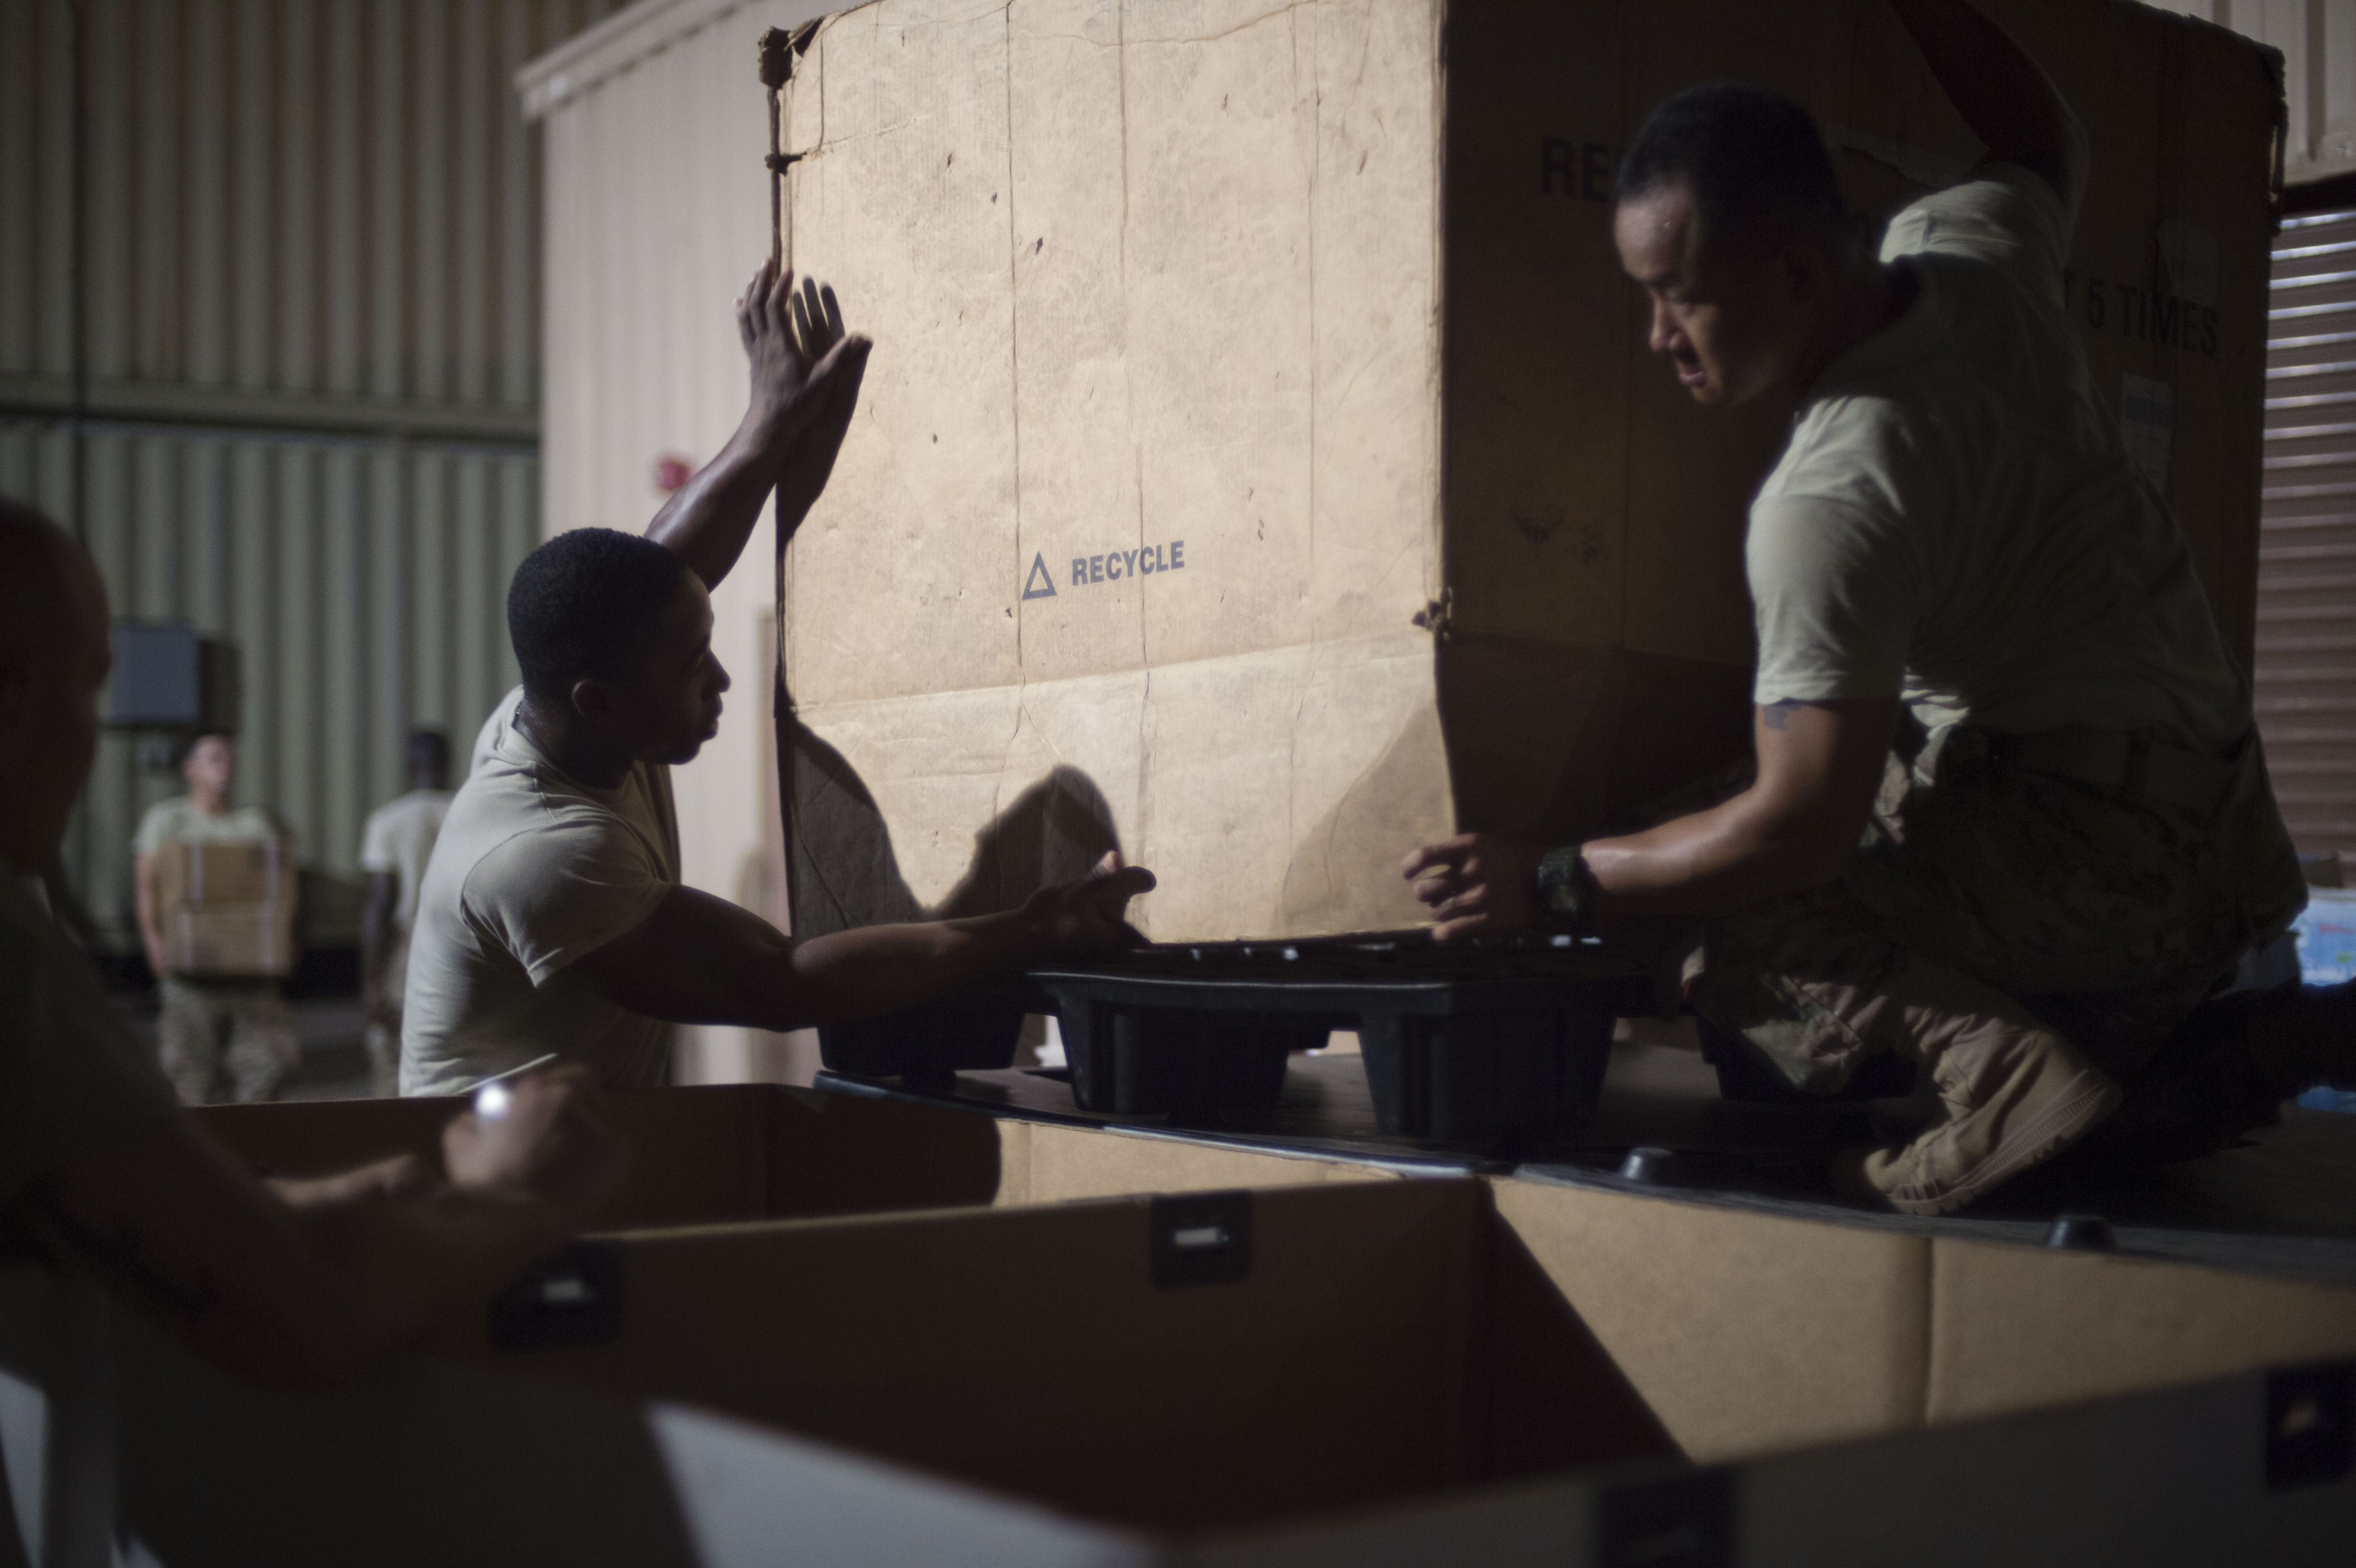 U.S. Army Cpl. Lavon Smith and Spc. Tien Do, East African Response Force members, build pallets to store supplies and equipment during an EARF validation exercise May 27, 2016, at Camp Lemonnier, Djibouti. The pallets containing tons of sustainment items were loaded for transport on to a U.S. Air Force C-130J Hercules aircraft. (U.S. Air Force photo by Staff Sgt. Eric Summers Jr.)